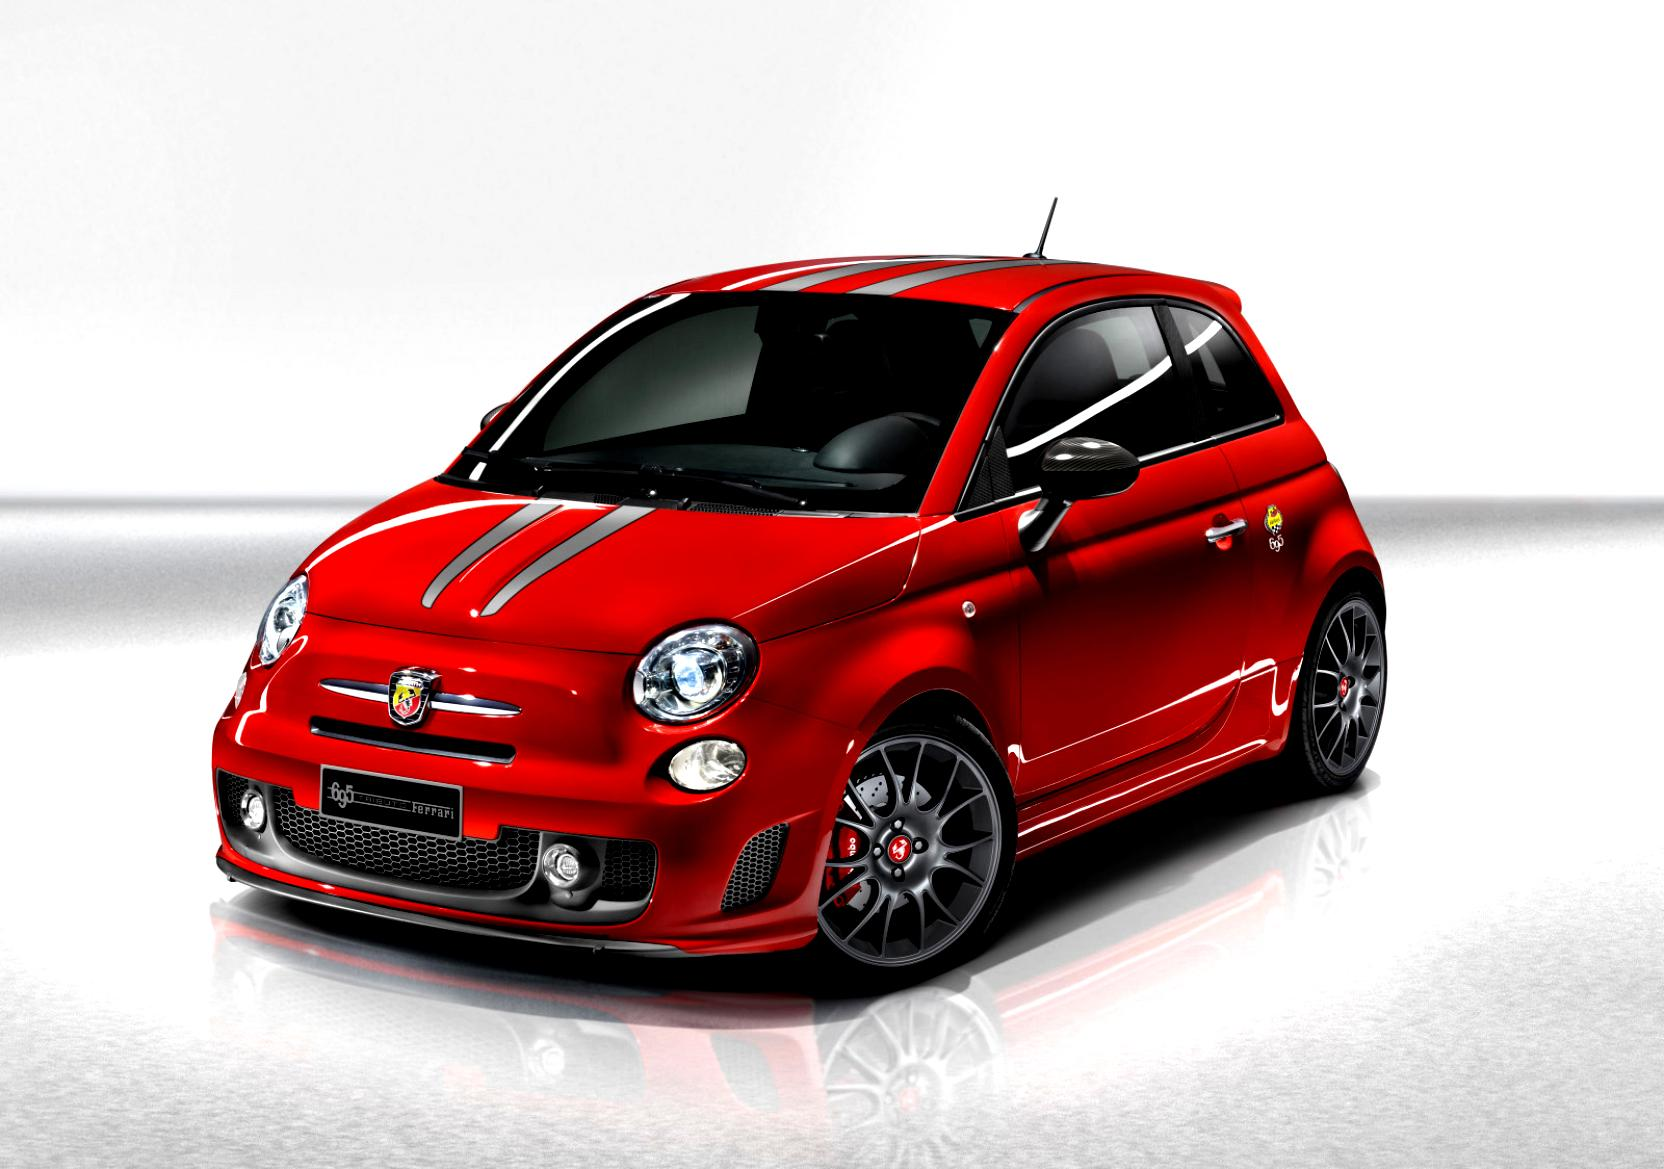 Fiat 500 Abarth 695 Tributo Ferrari 2009 on fiat 500 abarth tributo ferrari